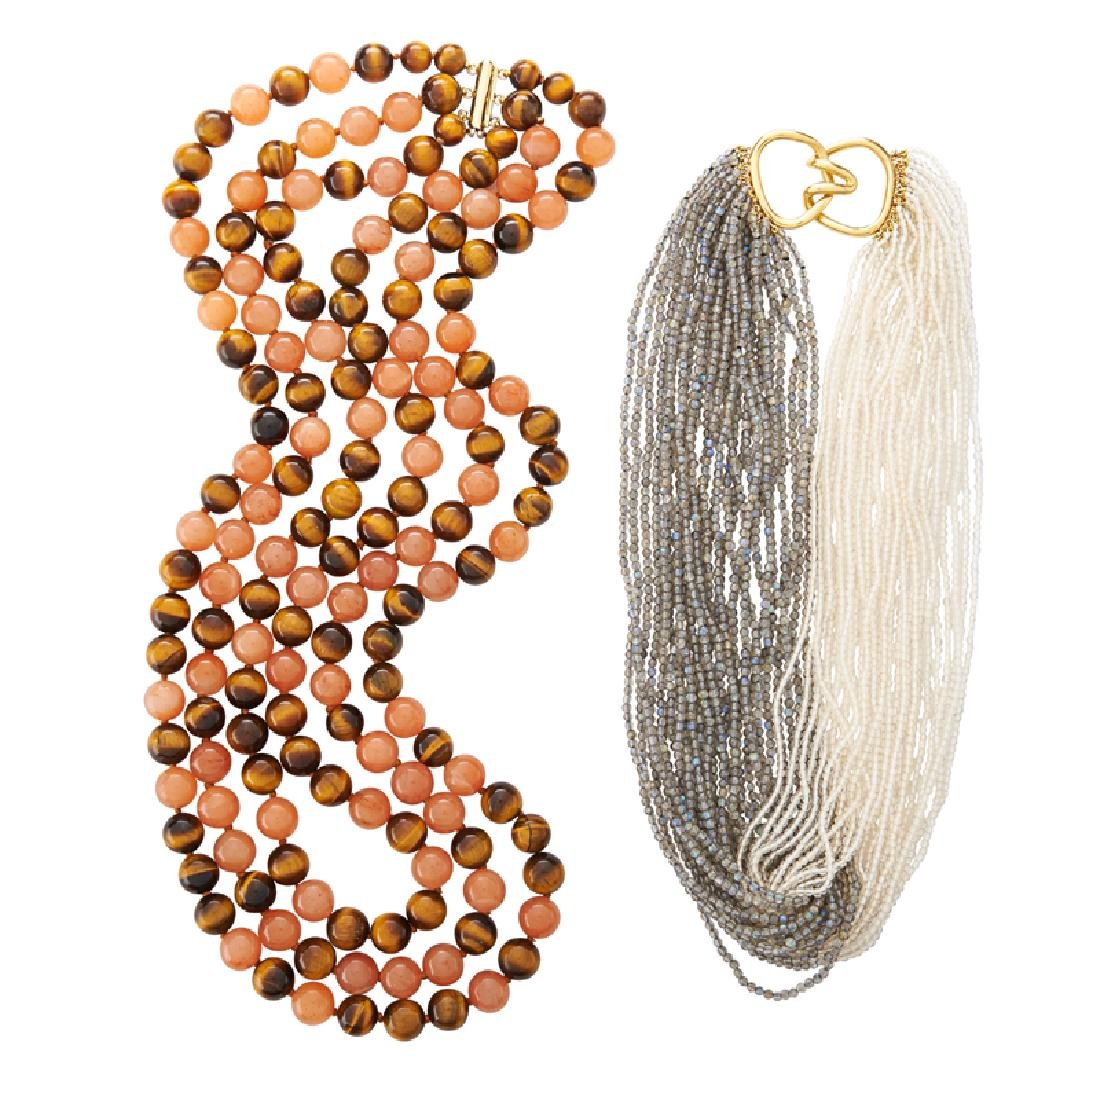 TWO HARDSTONE MULTISTRAND NECKLACES